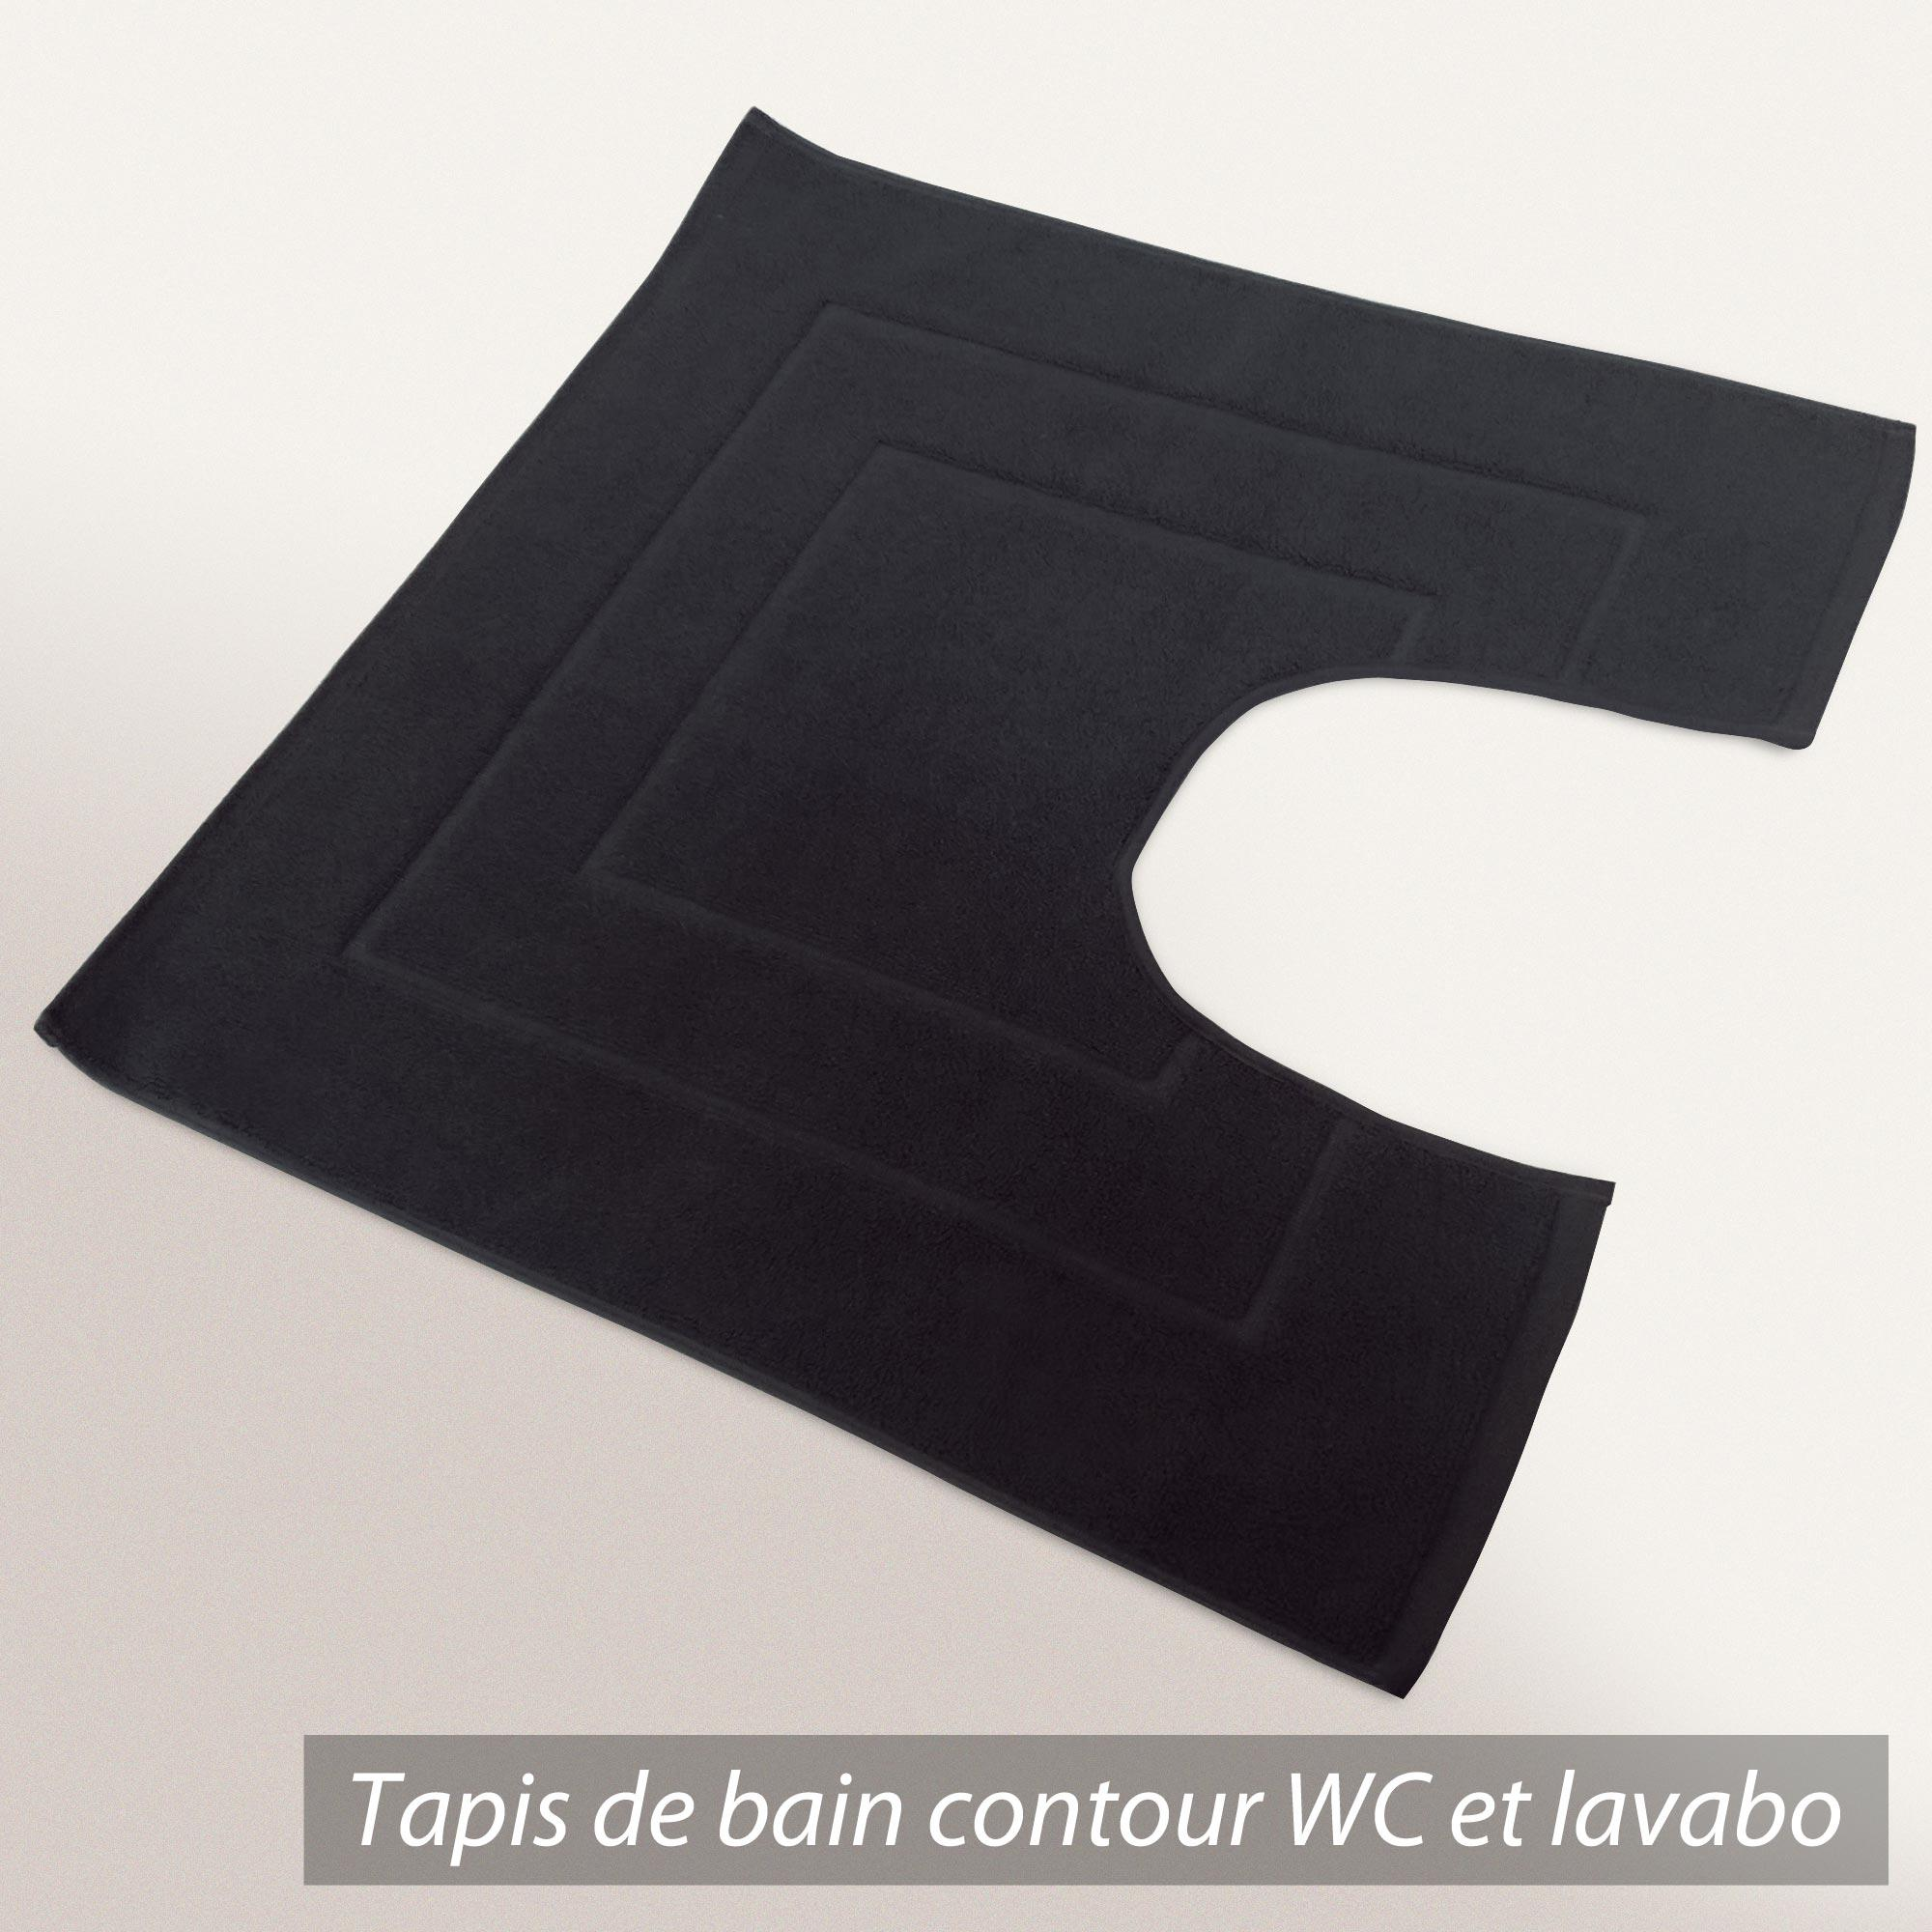 tapis de bain contour wc 60x60cm uni coton flair. Black Bedroom Furniture Sets. Home Design Ideas